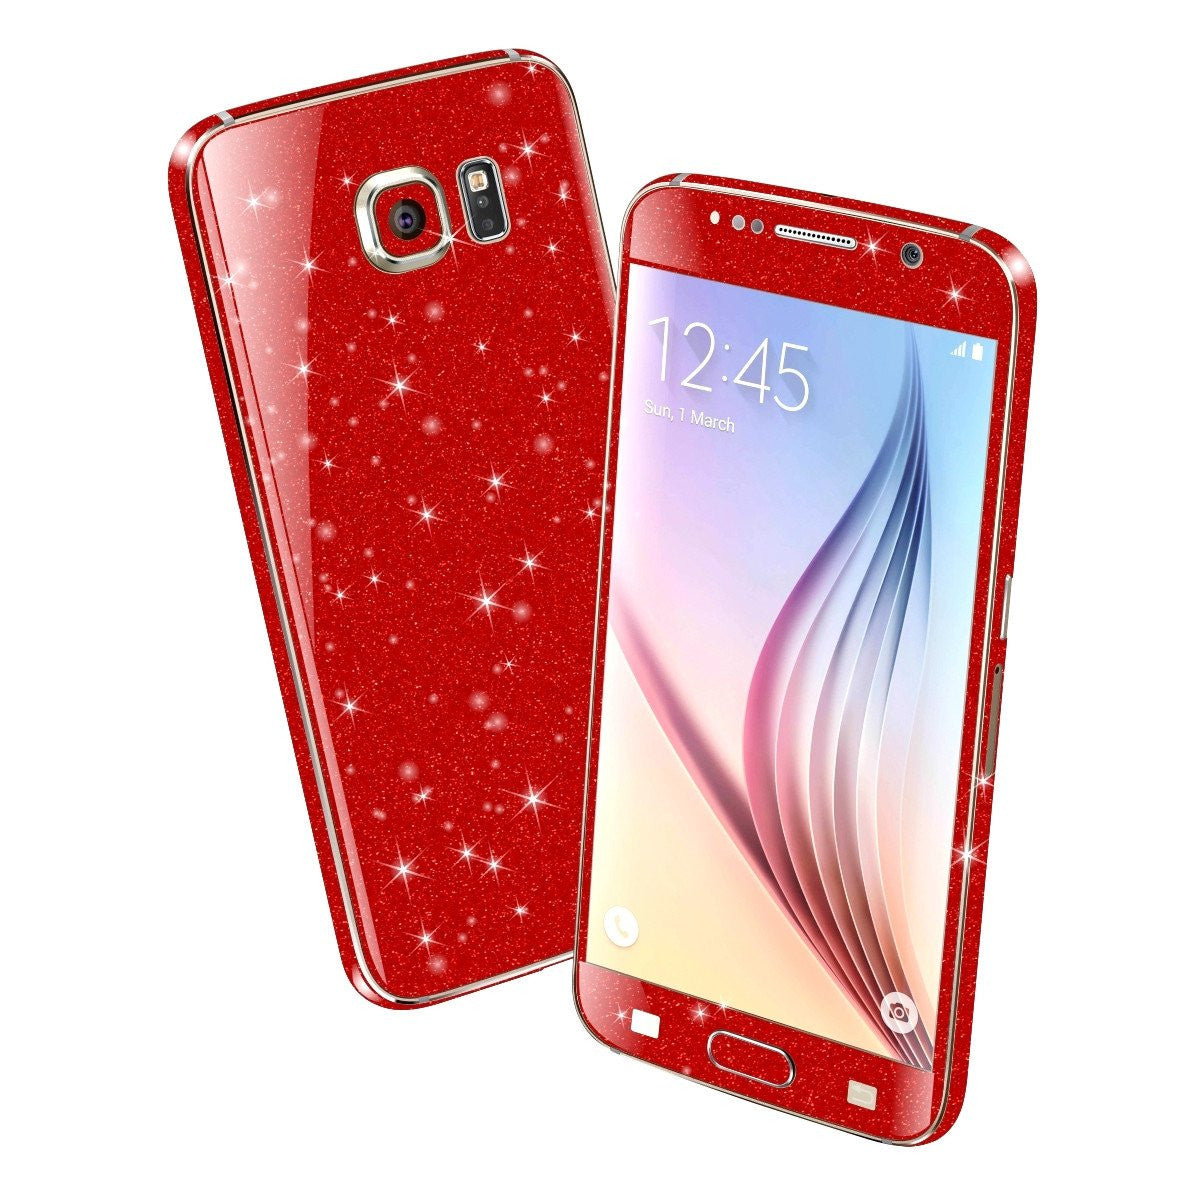 Samsung Galaxy S6 DIAMOND RED Shimmering Sparkling Glitter Skin Wrap Sticker Cover Decal Protector by EasySkinz